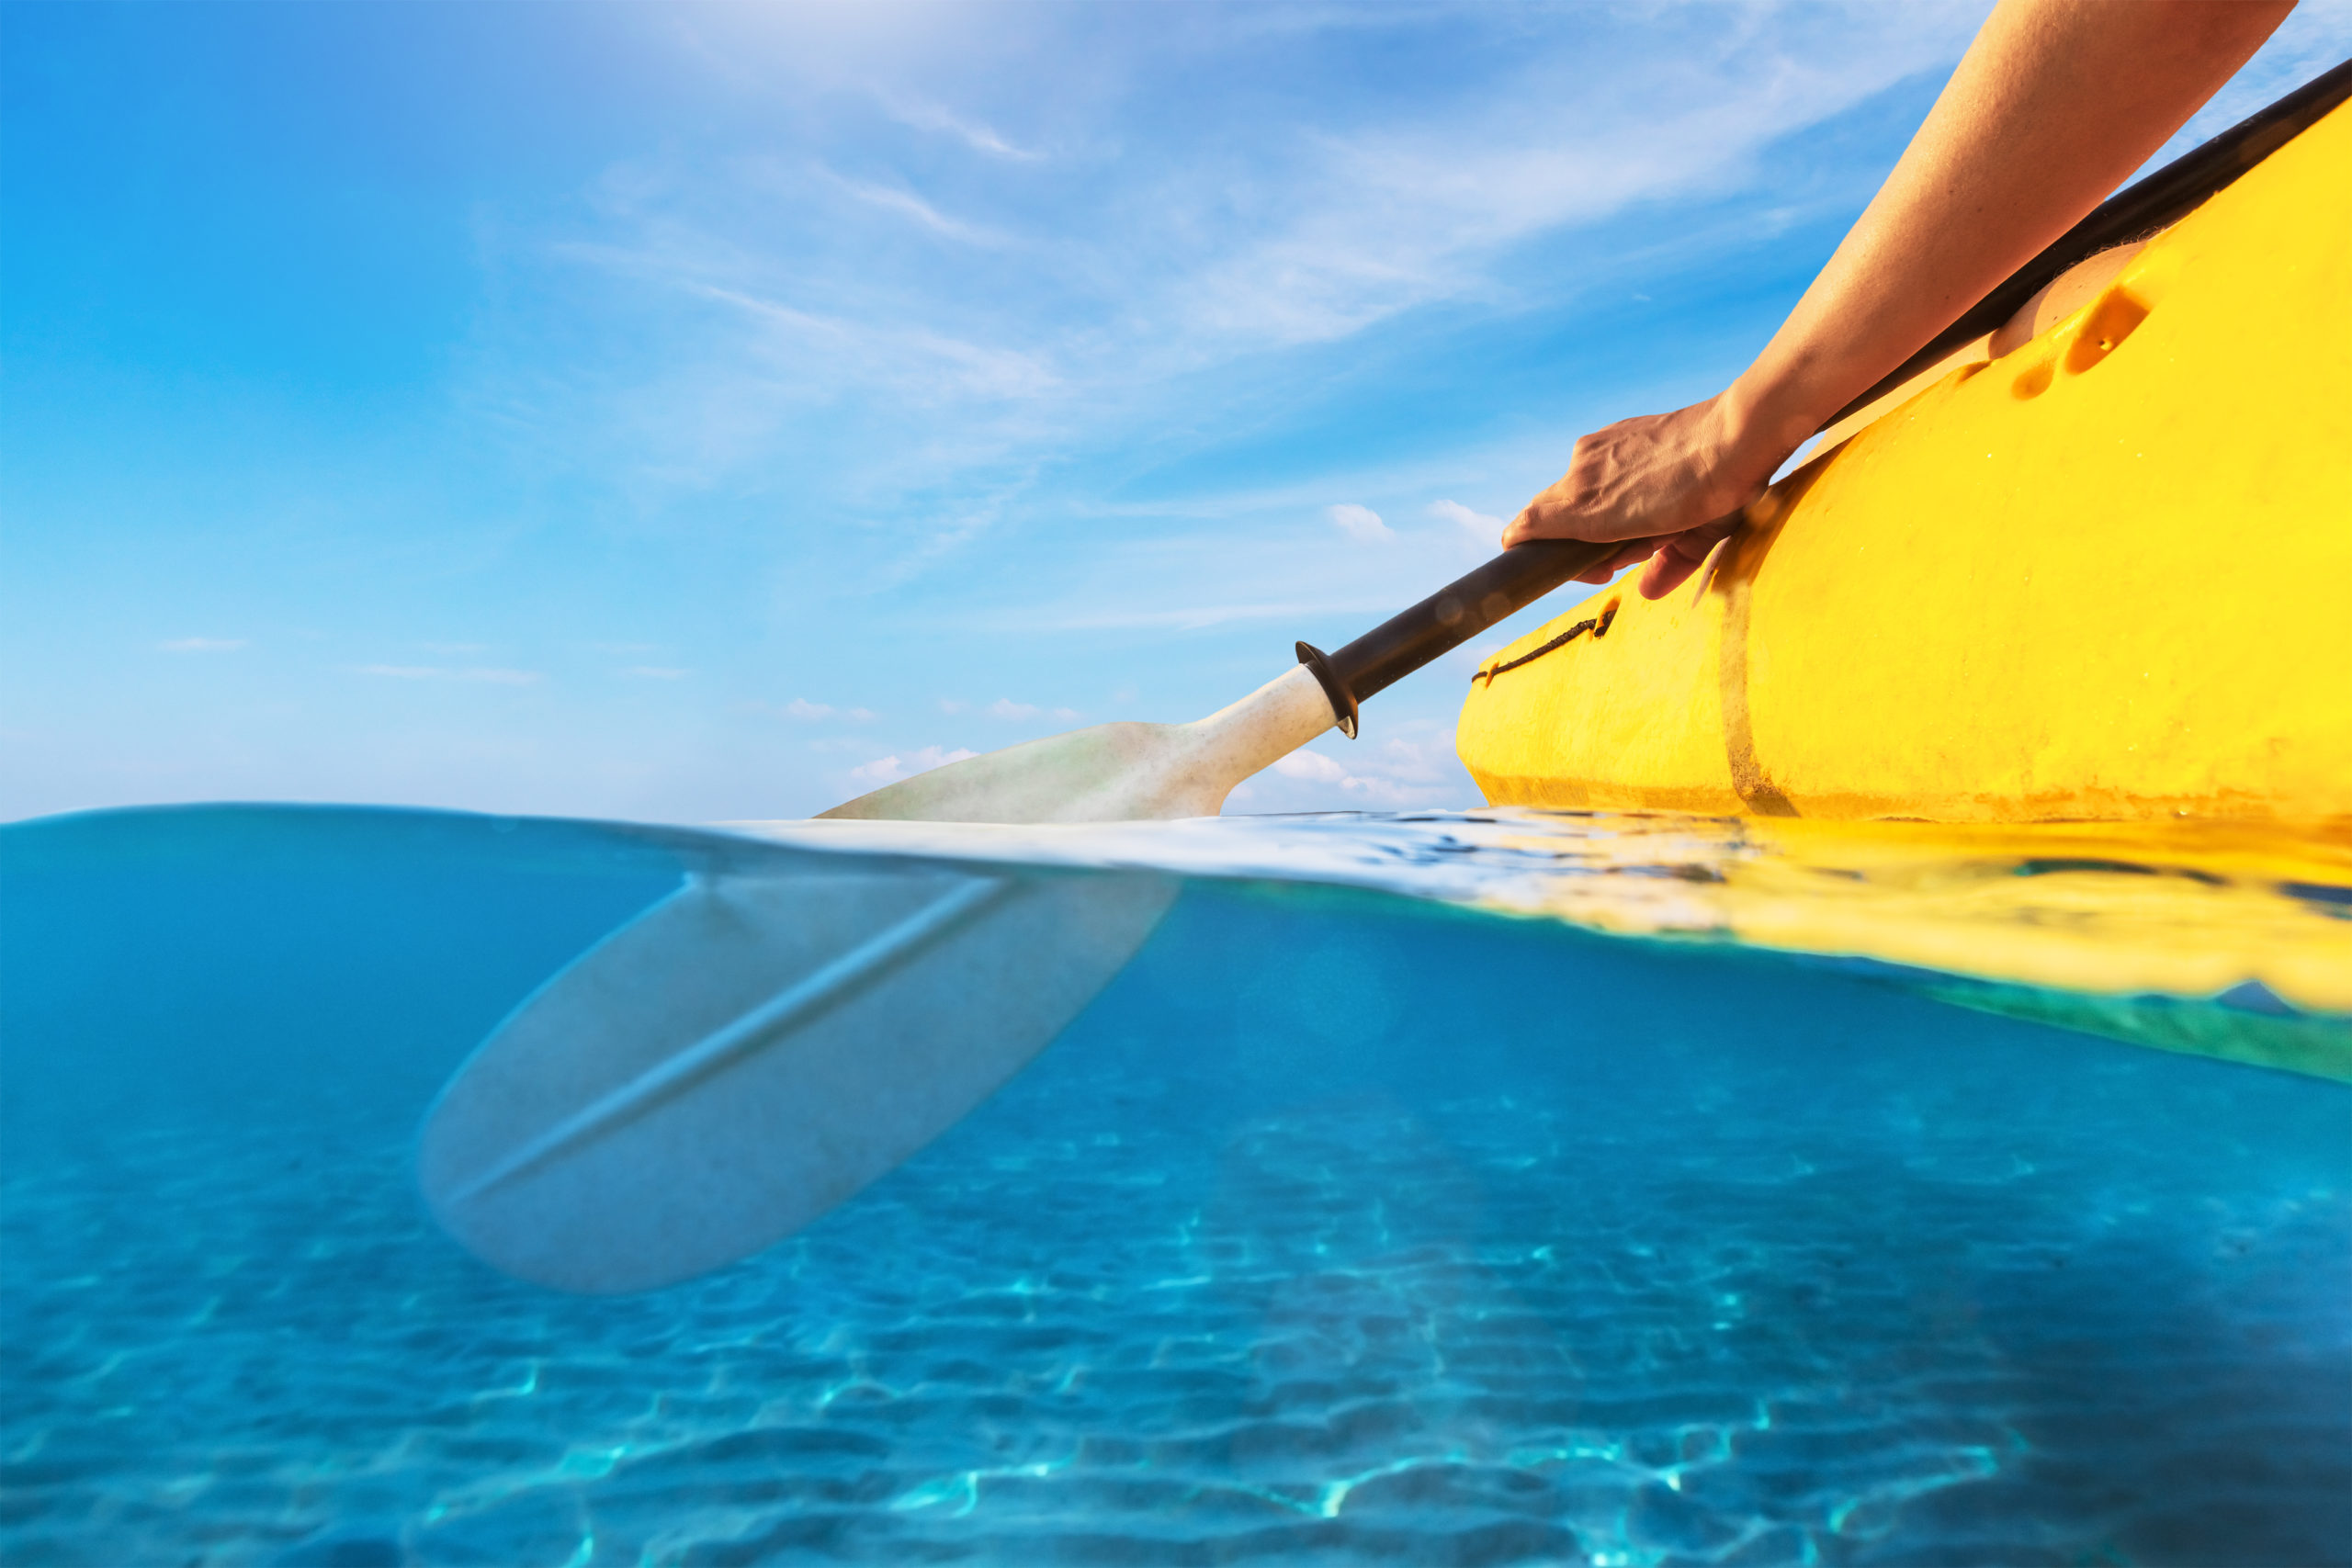 What Can I Do to Keep My Business Above Water in Turbulent Times?